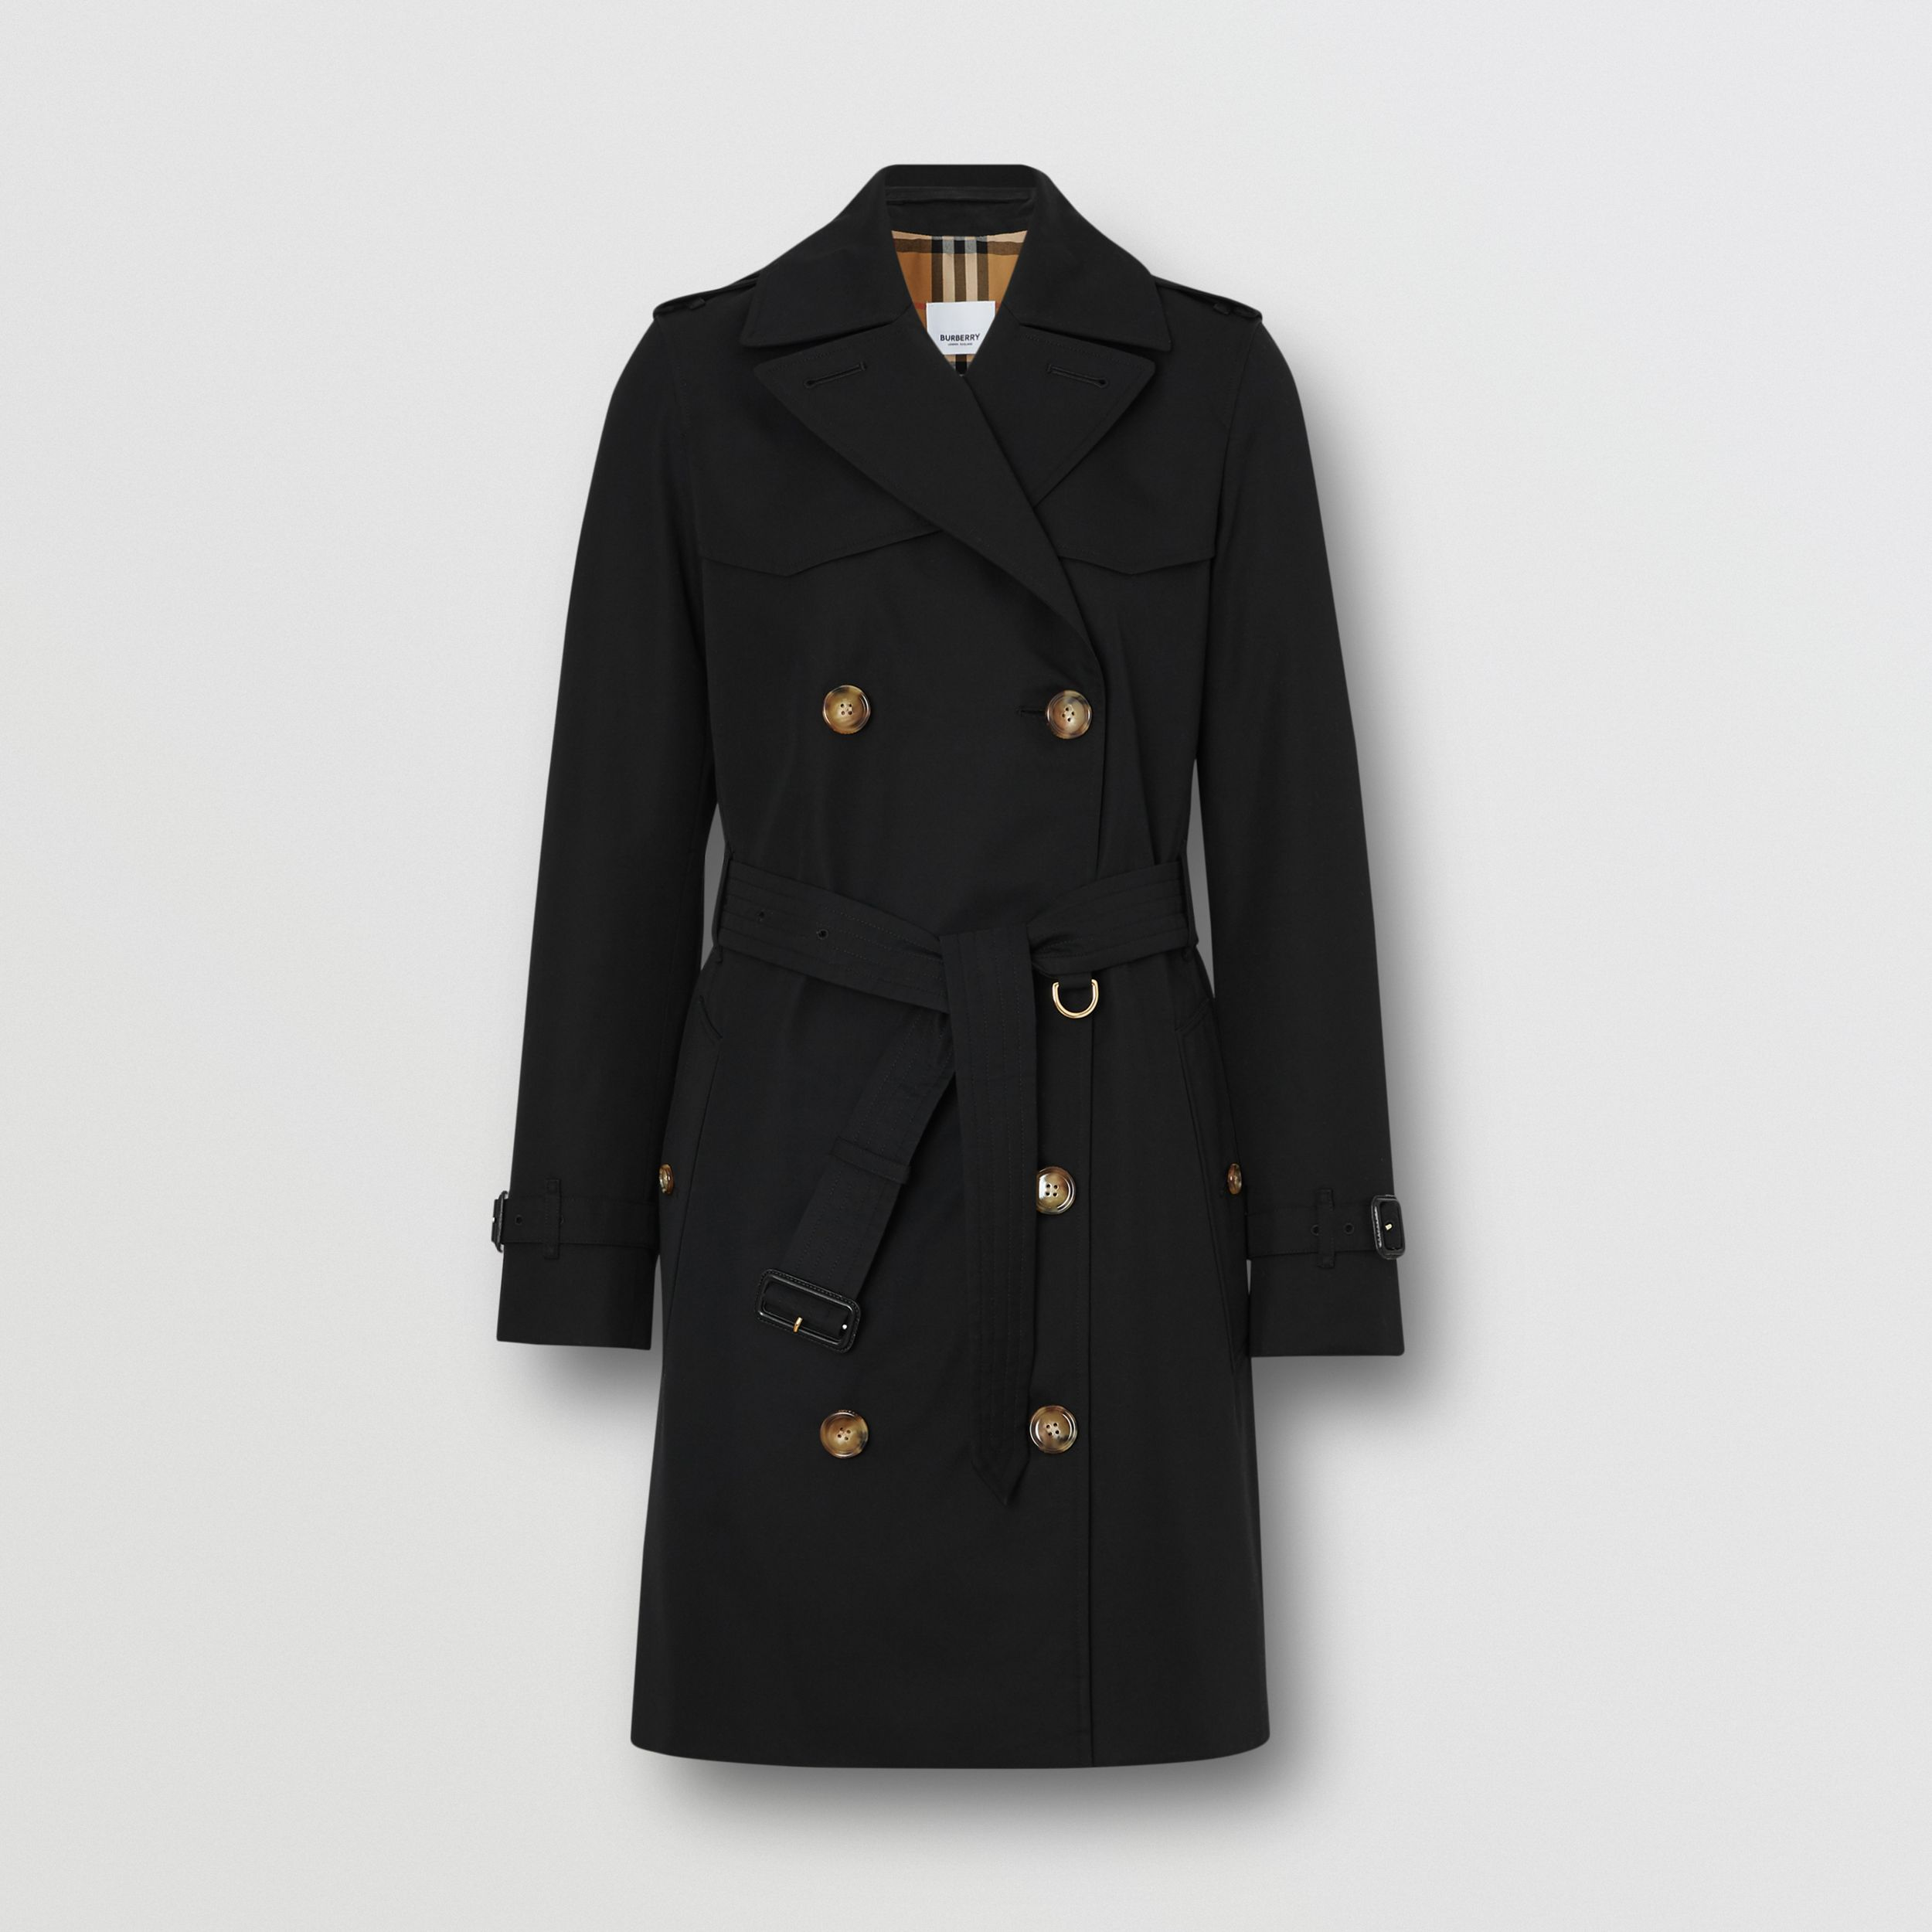 The Short Islington Trench Coat in Black - Women | Burberry - 4